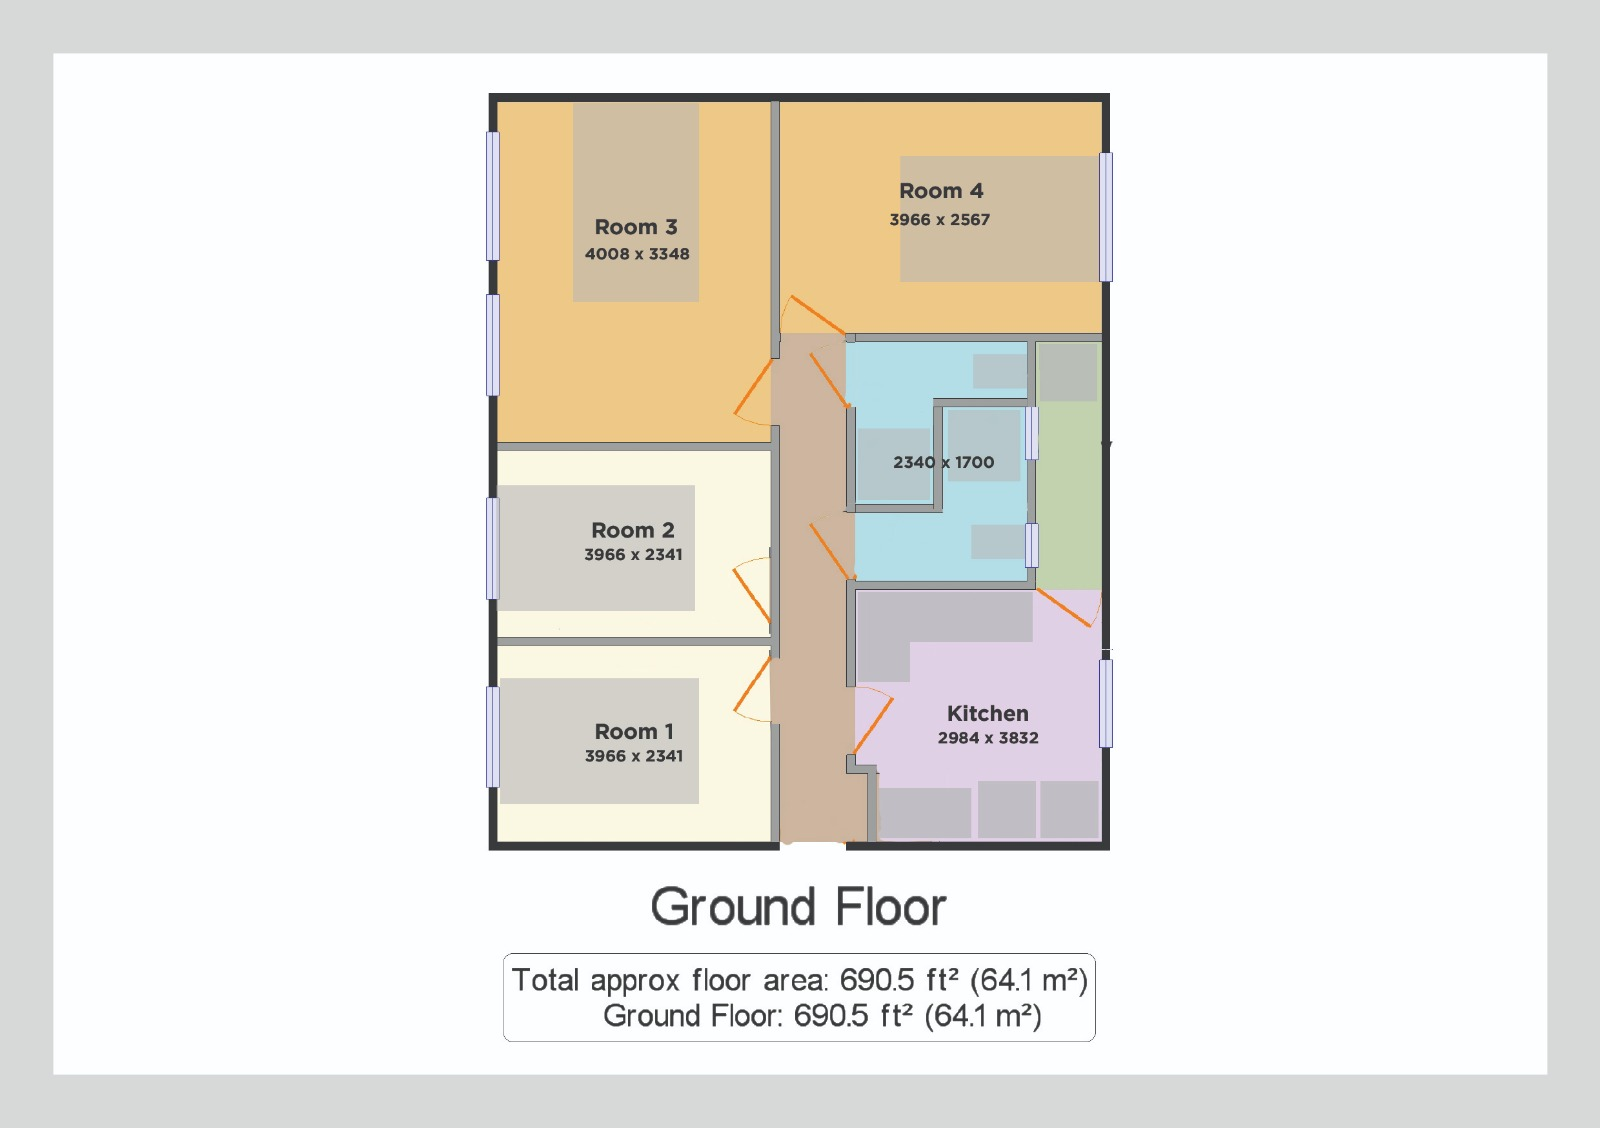 Floor Plan at Clapham North Serviced Apartment, Clapham, London